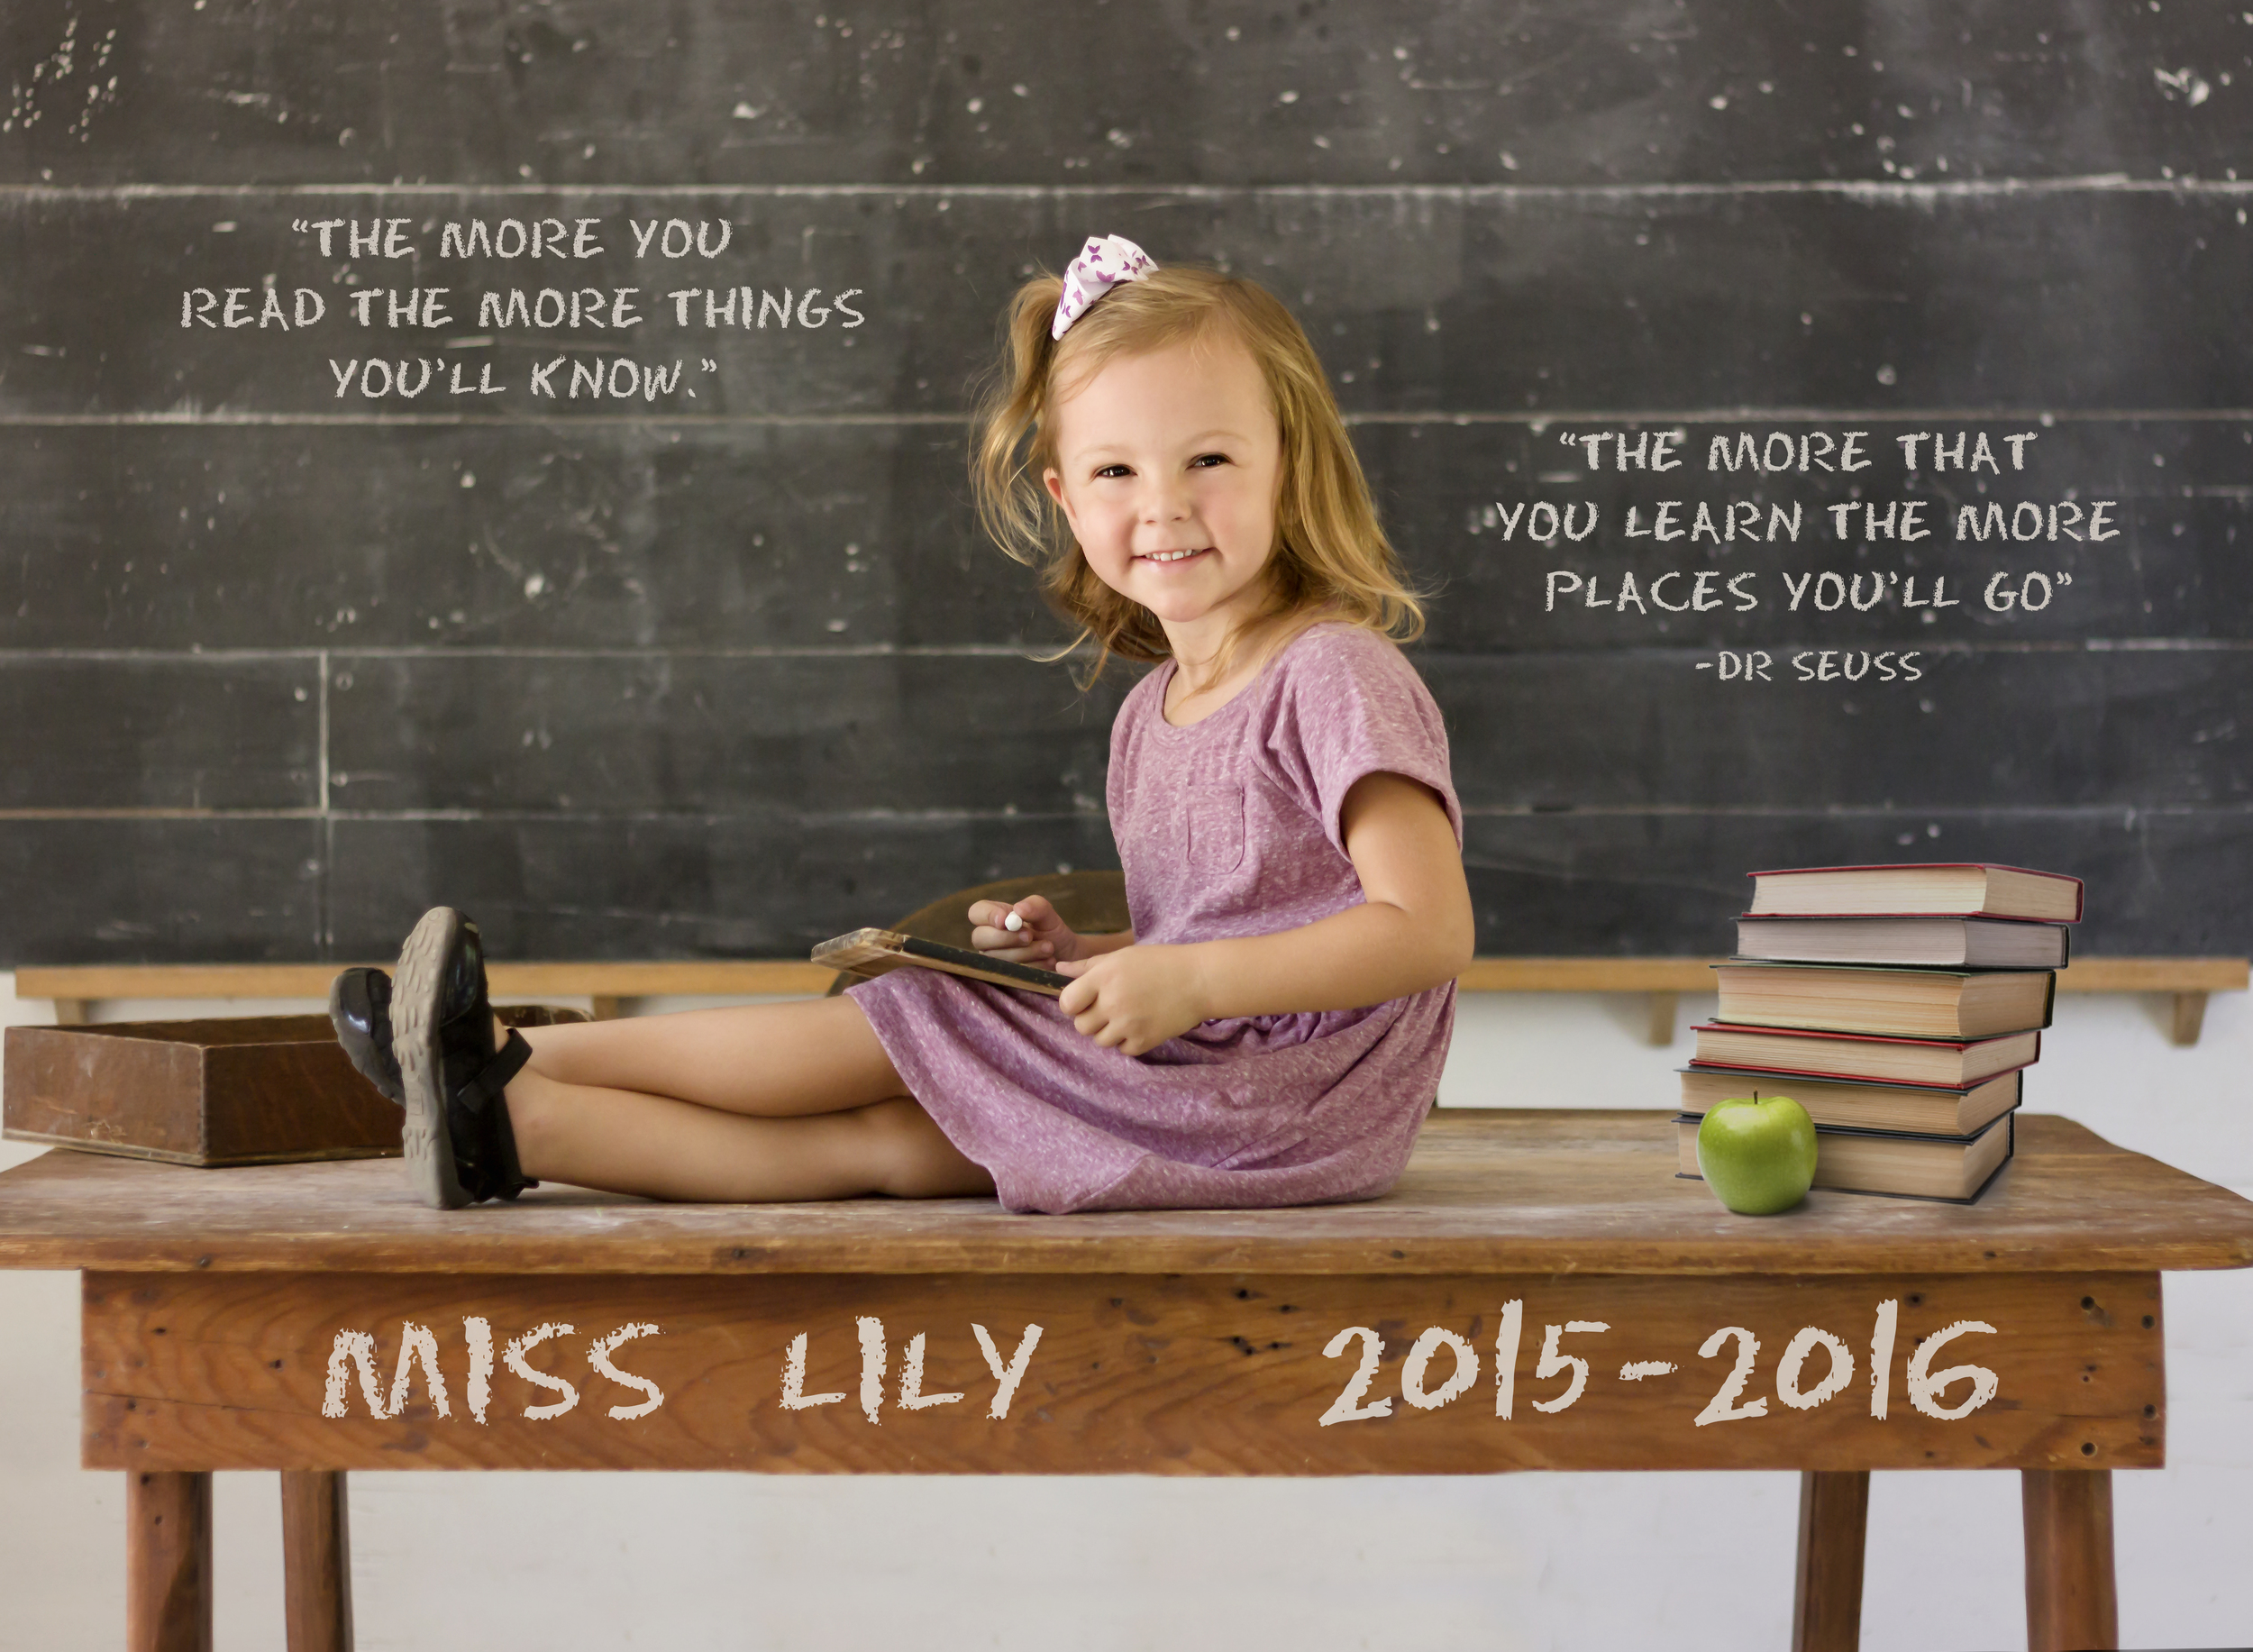 This is my daughter, Lily.  She started preschool this year.